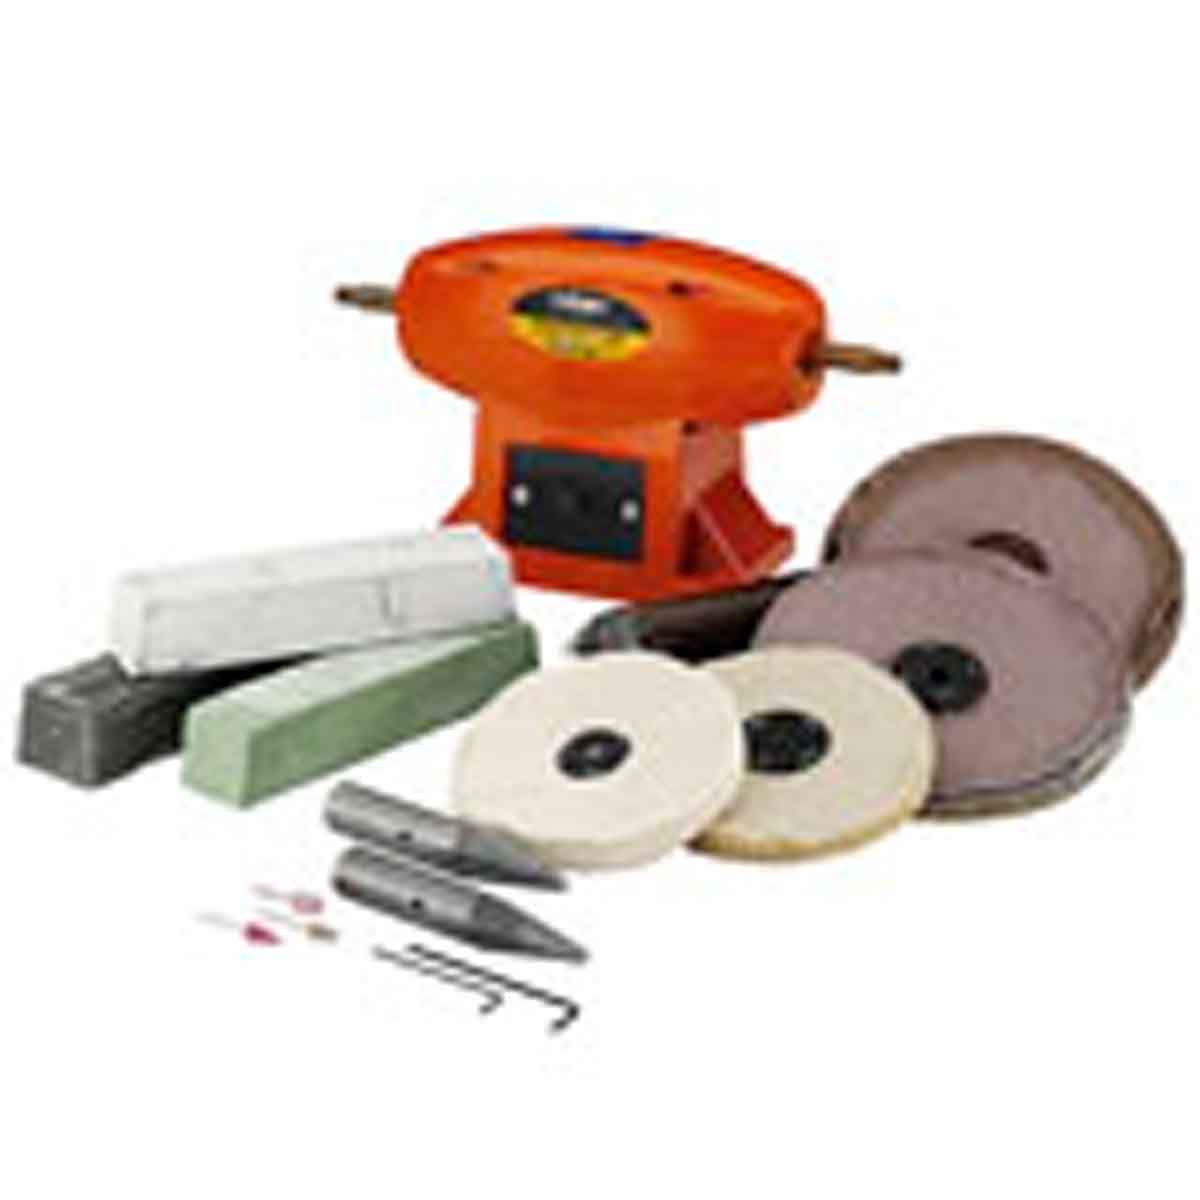 Miscellaneous Accessories for Power and Large Tools